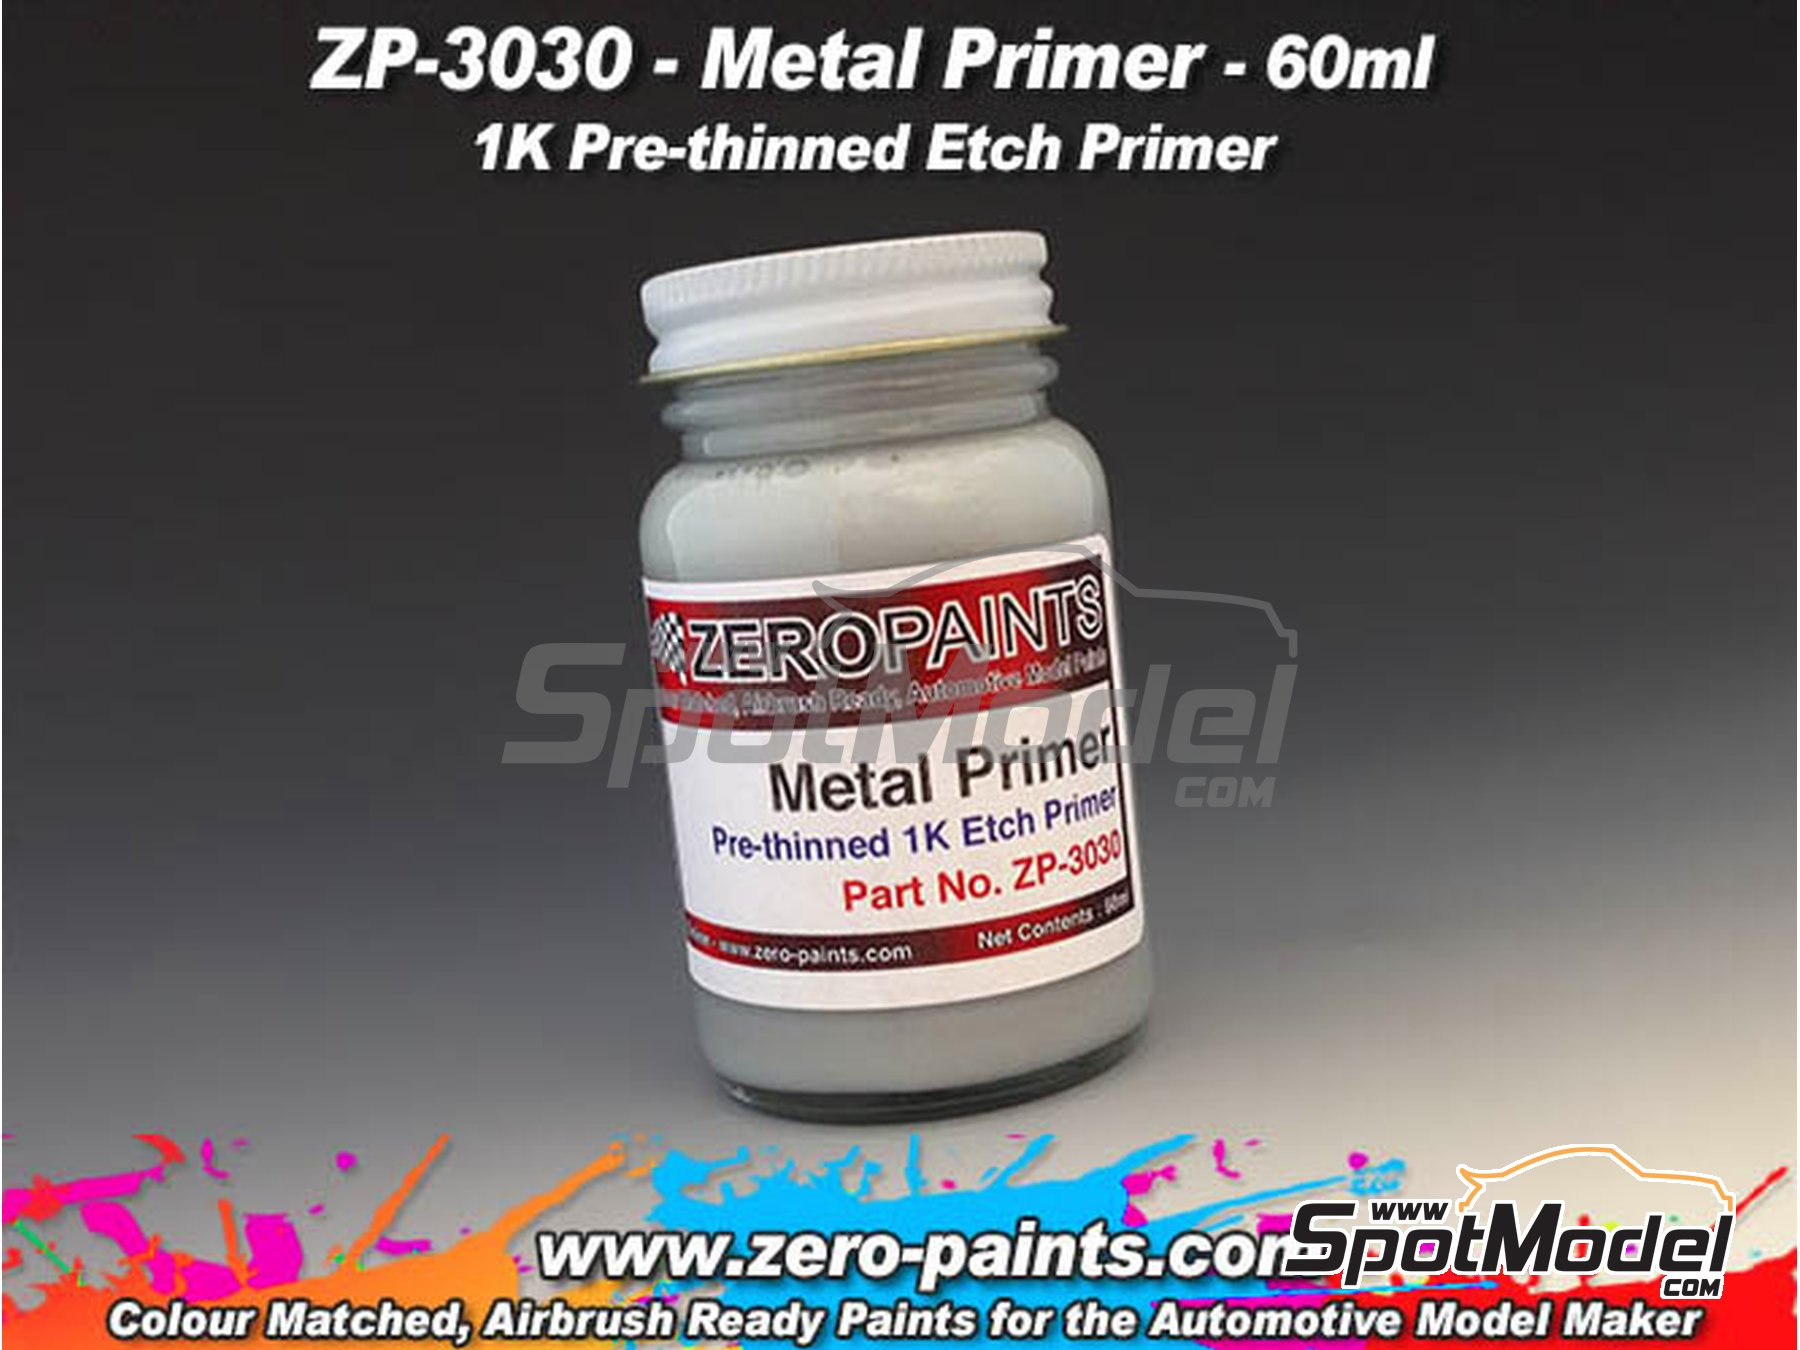 Image 1: Metal primer pre-thinned - 1 x 60ml | Primer manufactured by Zero Paints (ref. ZP-3030)